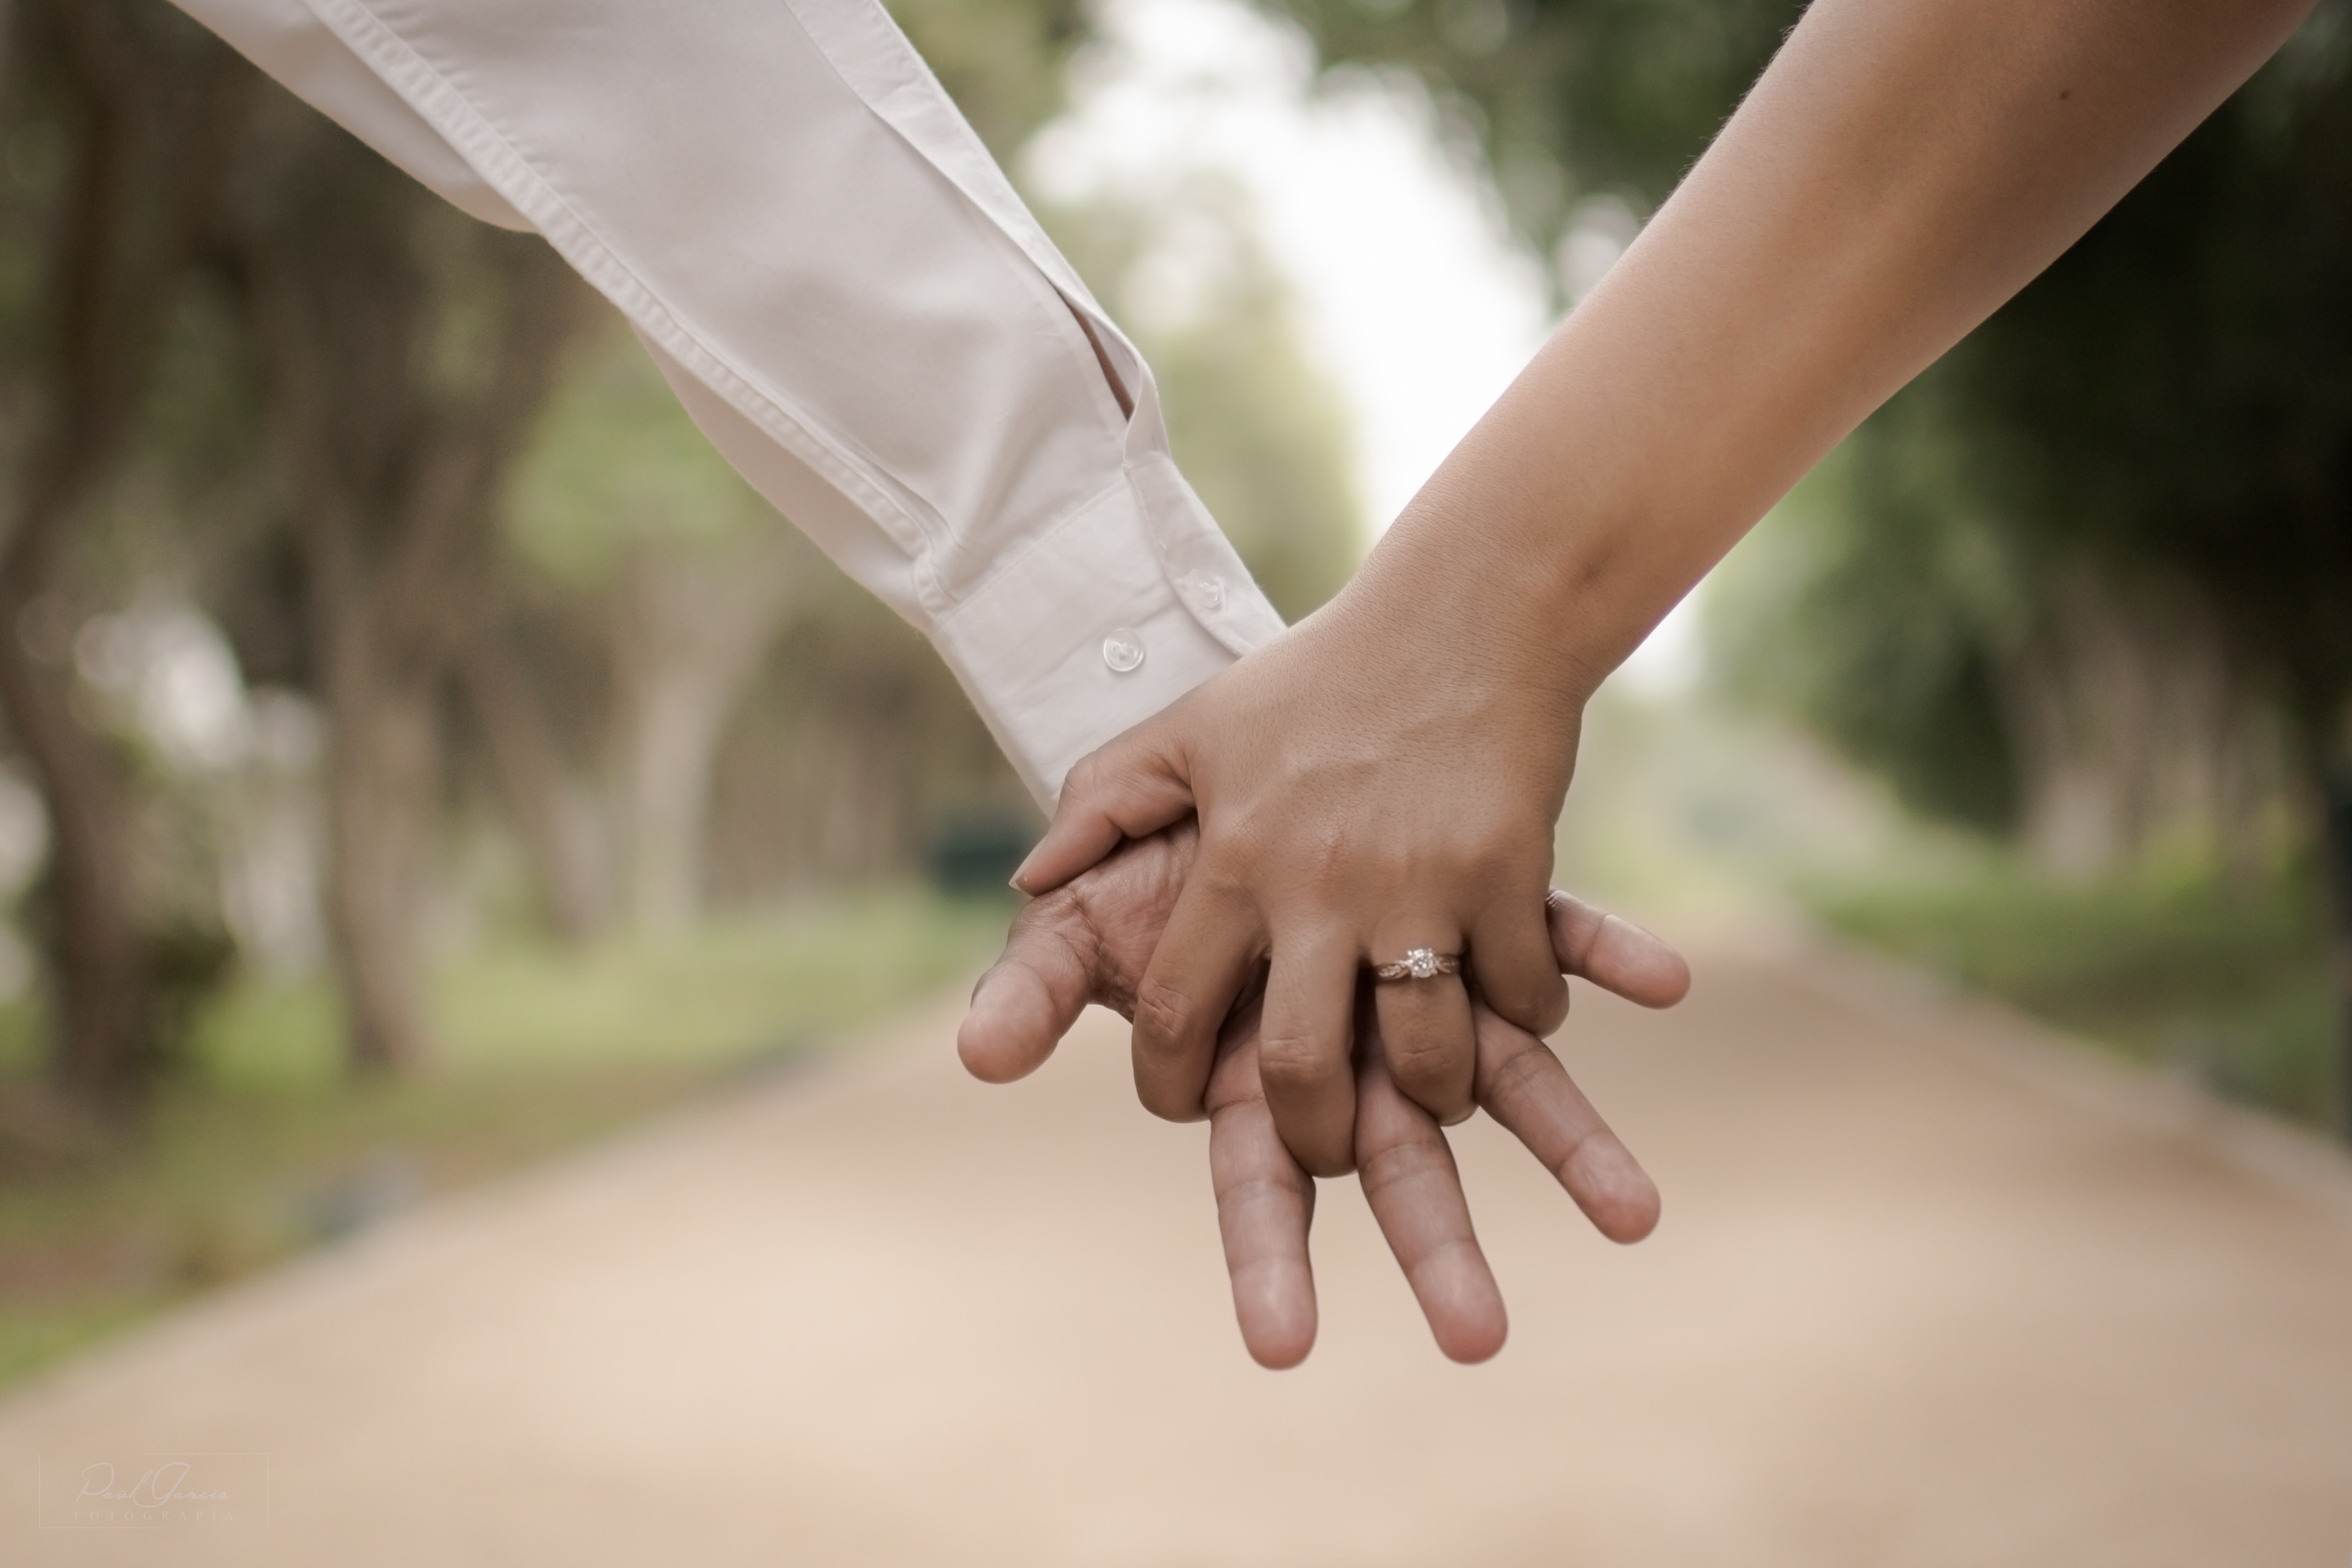 Close-up of an engaged couple holding hands outdoors. One wears a long-sleeved shirt.